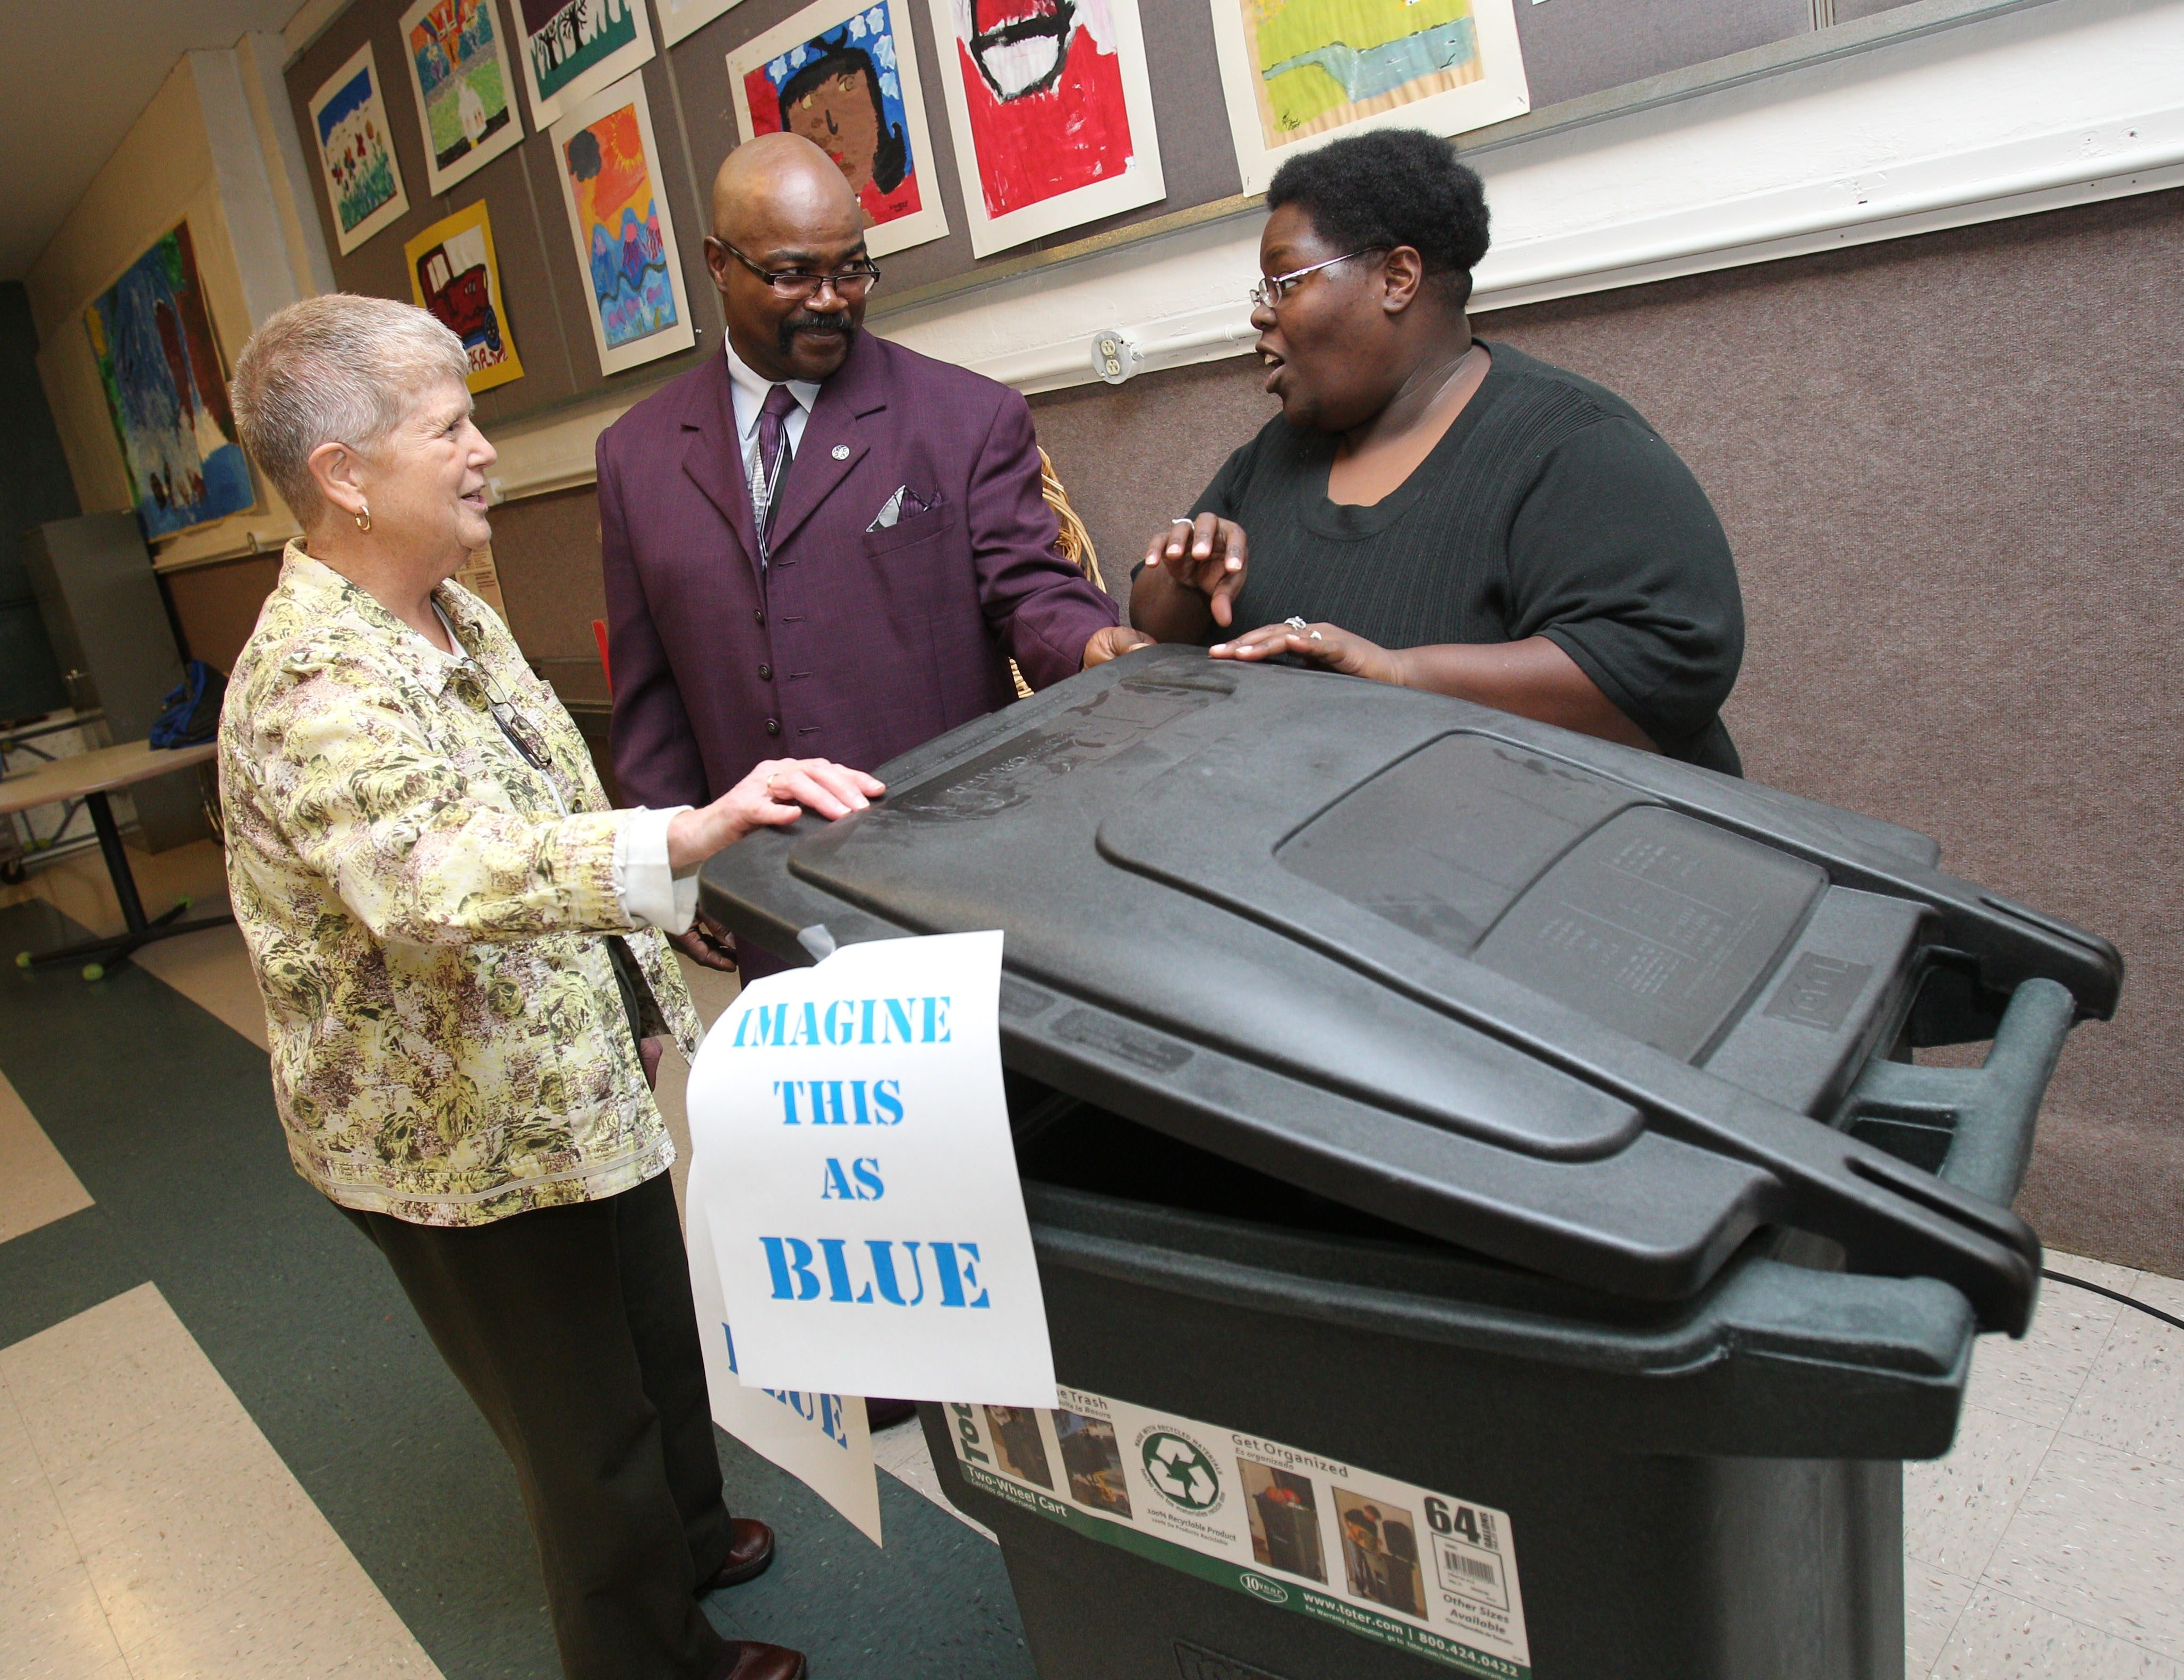 Sister Beth Brosmer, left, president of Niagara Organizing Alliance for Hope, speaks with Tyrone Wooten and Sammantha Hollis about the need for garbage totes Sunday in Niagara Falls.